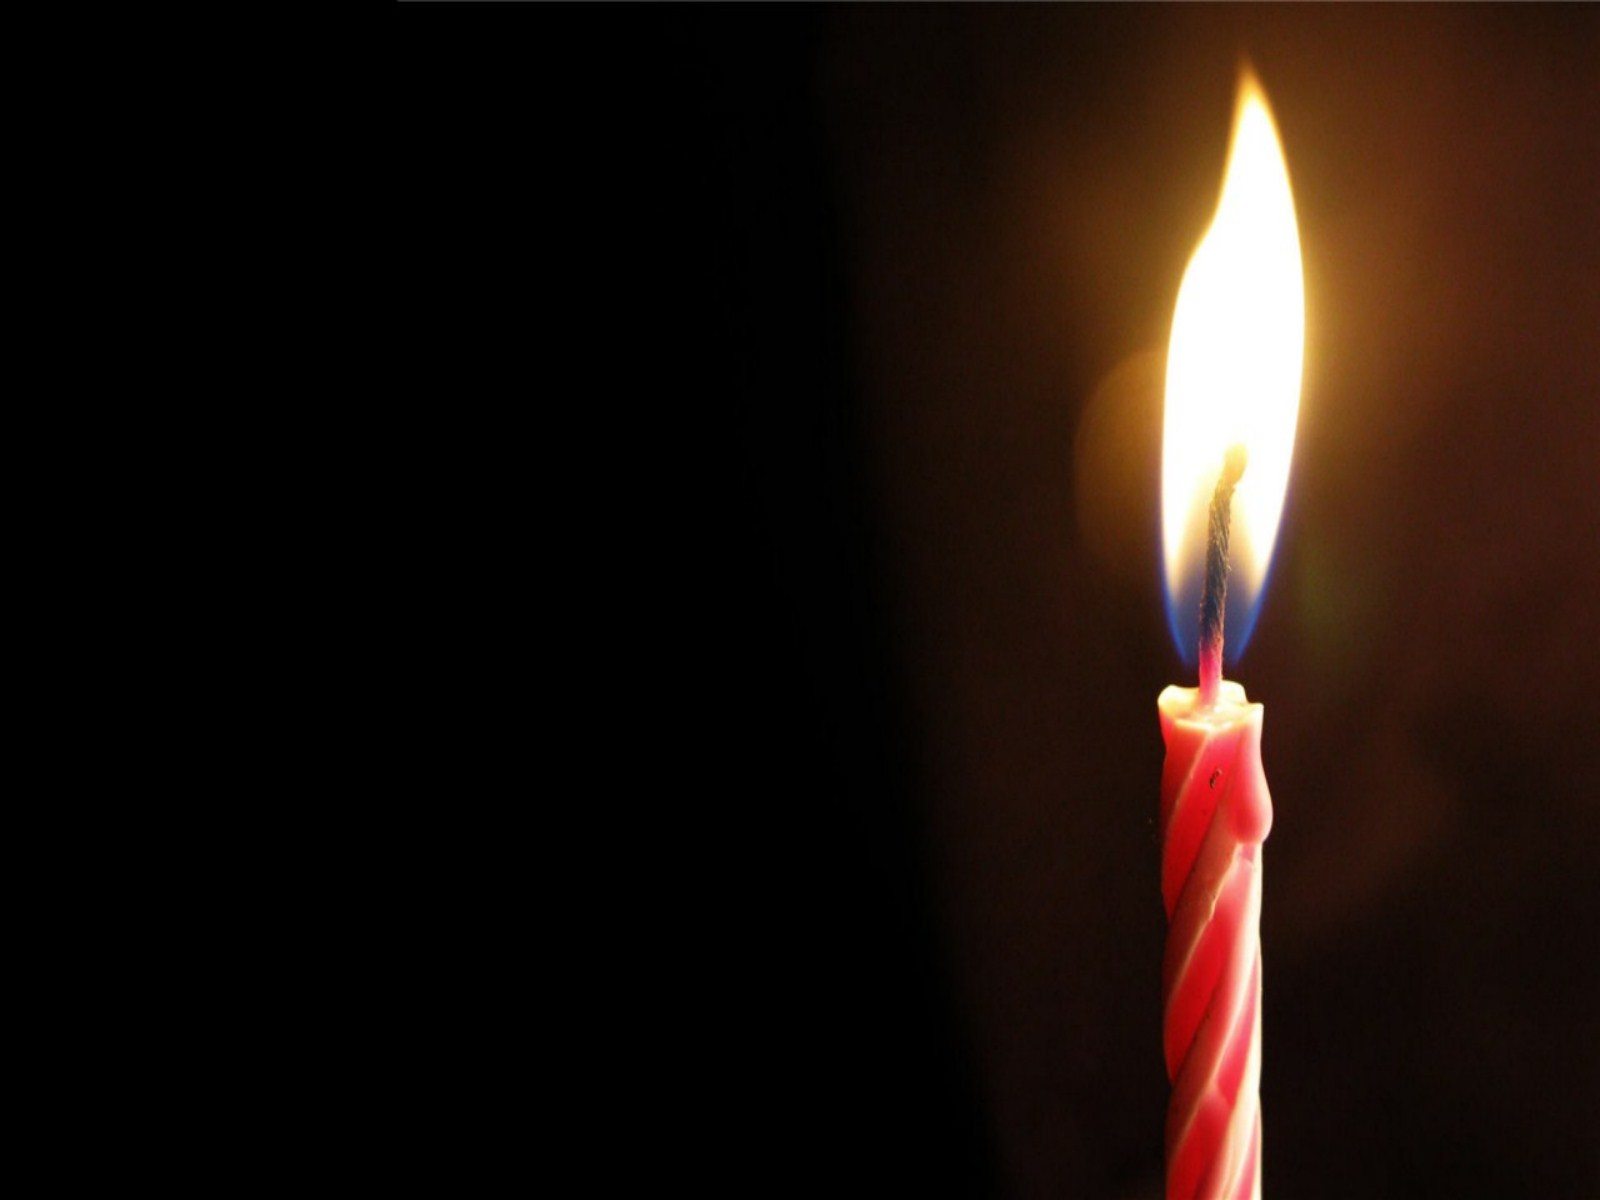 hd birthday candle wallpaper iphone wallpapers and Car Pictures 1600x1200